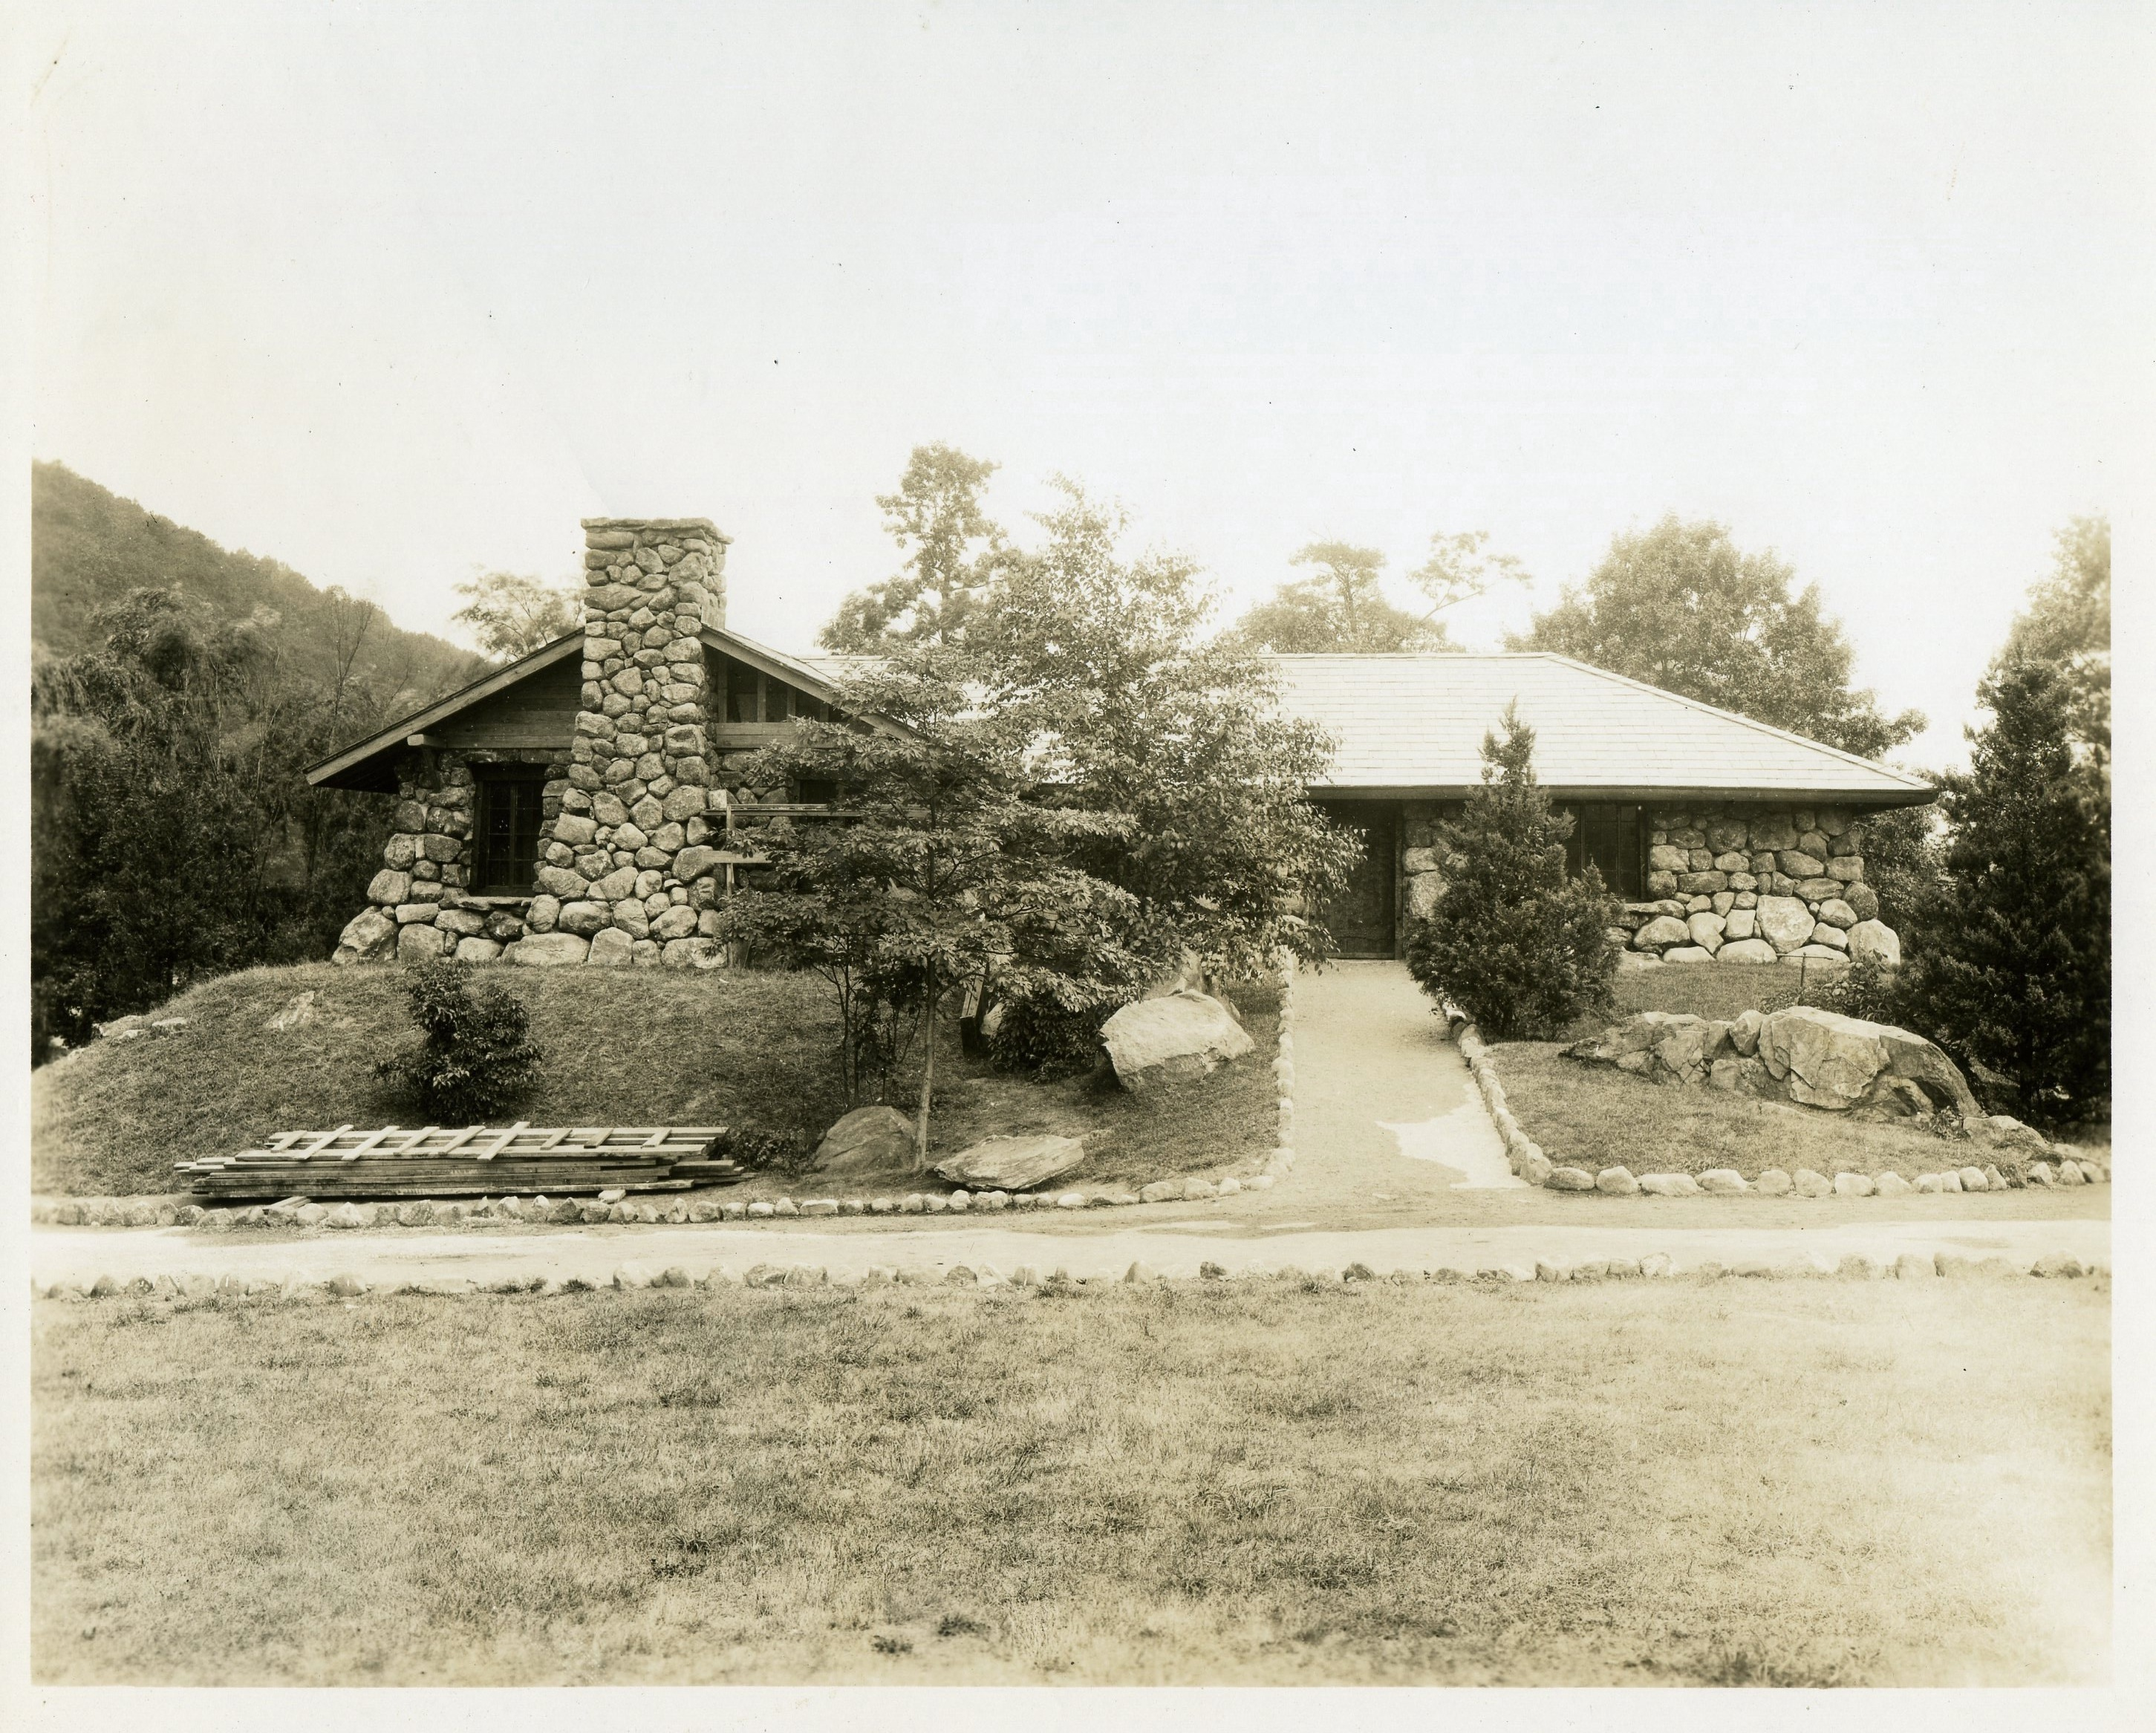 CCC Building at the Palisades Park 1